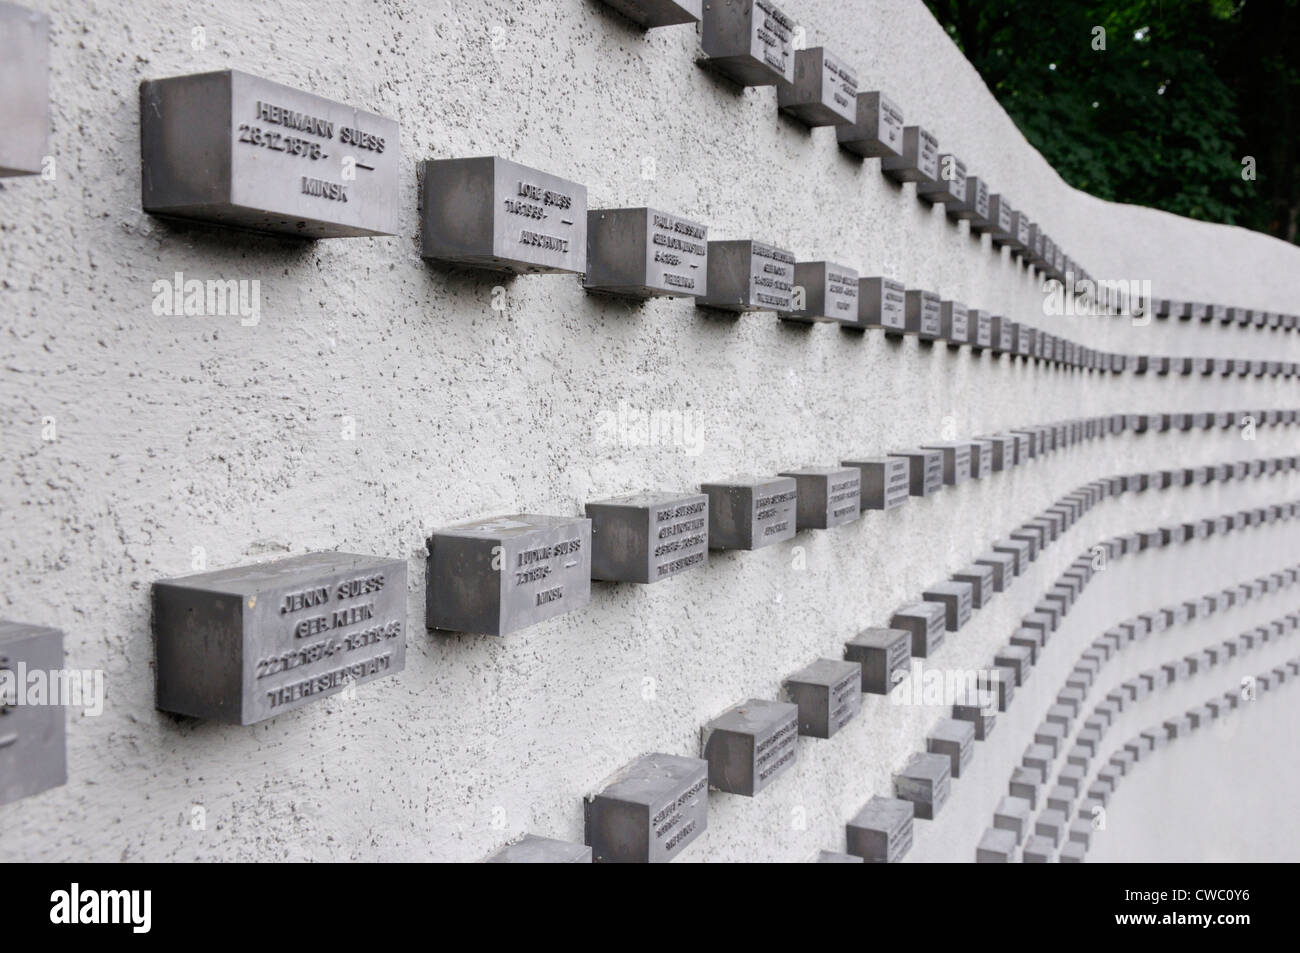 Memorial to the Frankfurt jewish citizens who were killed in the Holocaust, Frankfurt, Germany. Stock Photo